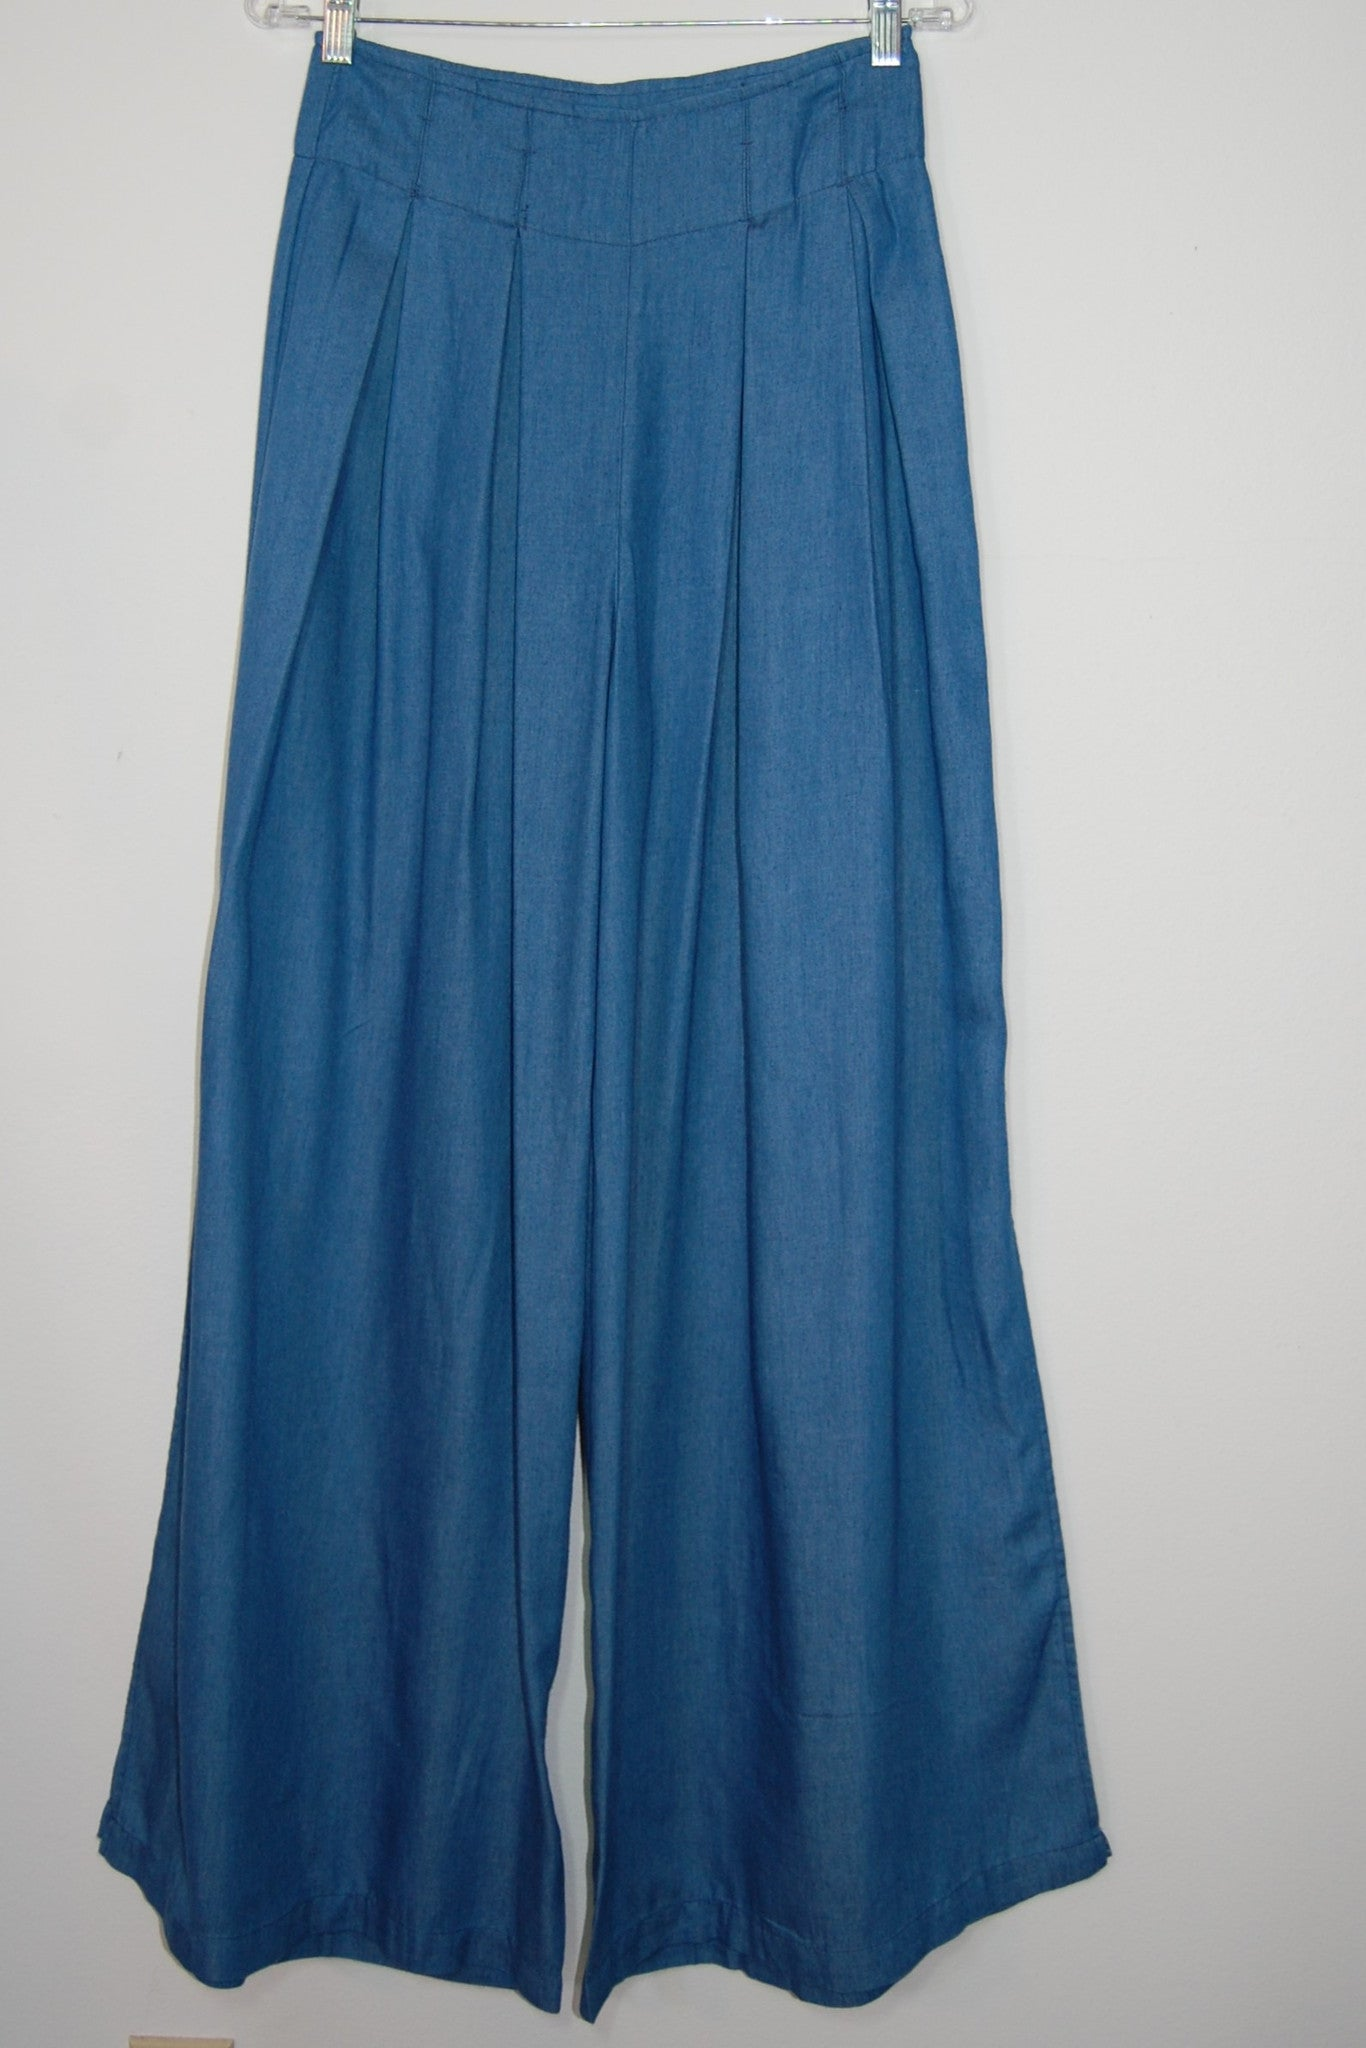 Jeans Palazzo Trousers